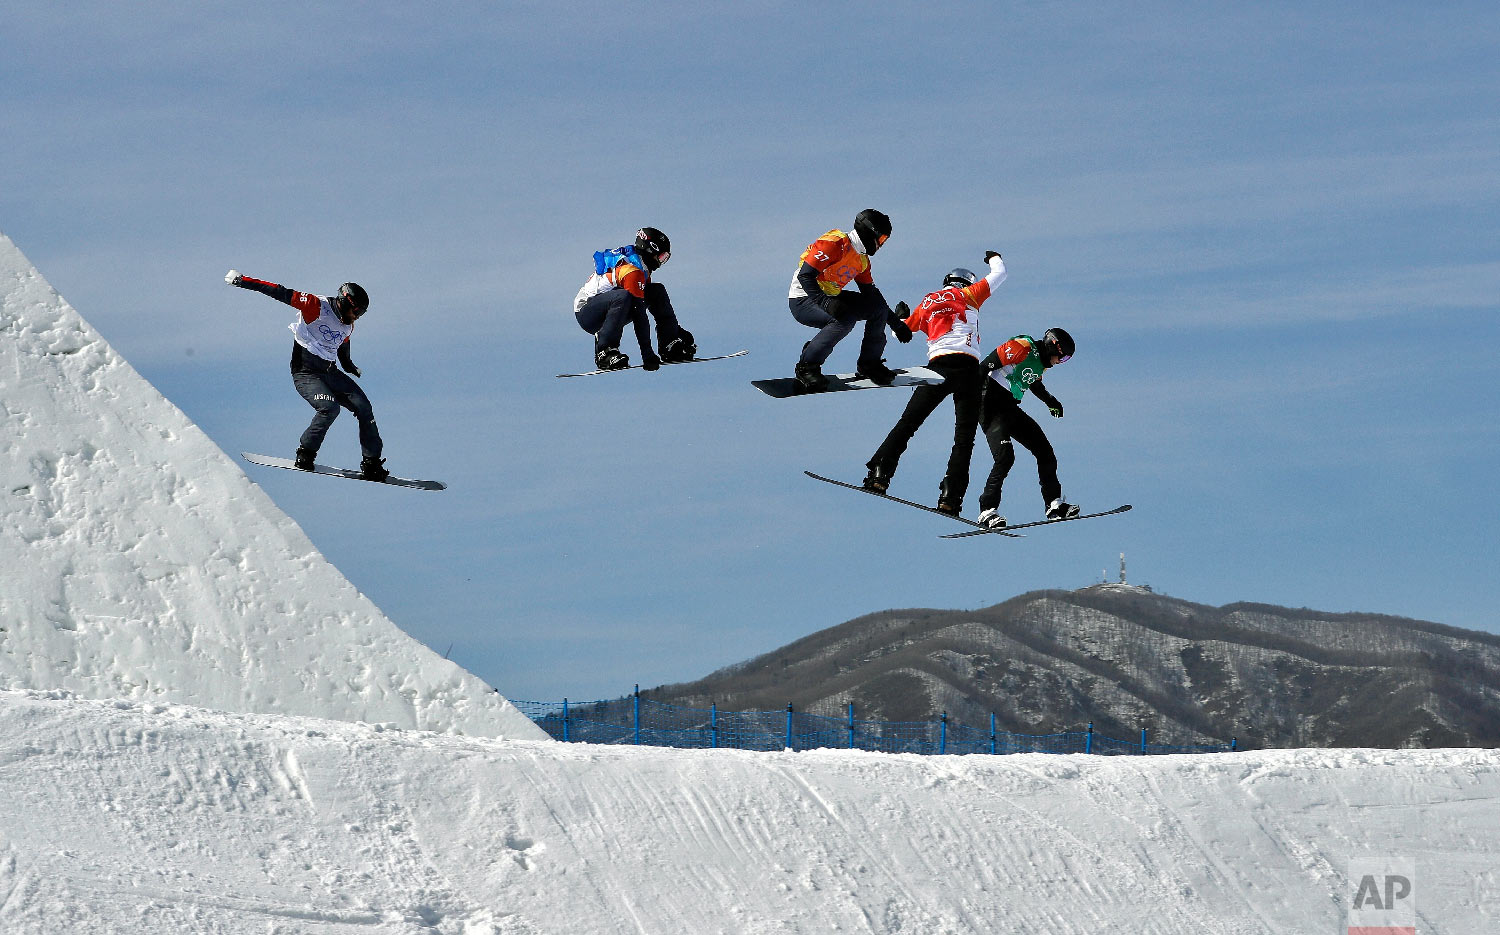 Form left; Lukas Pachner, of Austria, Jonathan Cheever, of the United States, Mick Dierdorff, of the United States, Regino Hernandez, of Spain, and Paul Berg, of Germany, run the course during the men's snowboard cross elimination round at Phoenix Snow Park at the 2018 Winter Olympics in Pyeongchang, South Korea, Thursday, Feb. 15, 2018. (AP Photo/Kin Cheung)